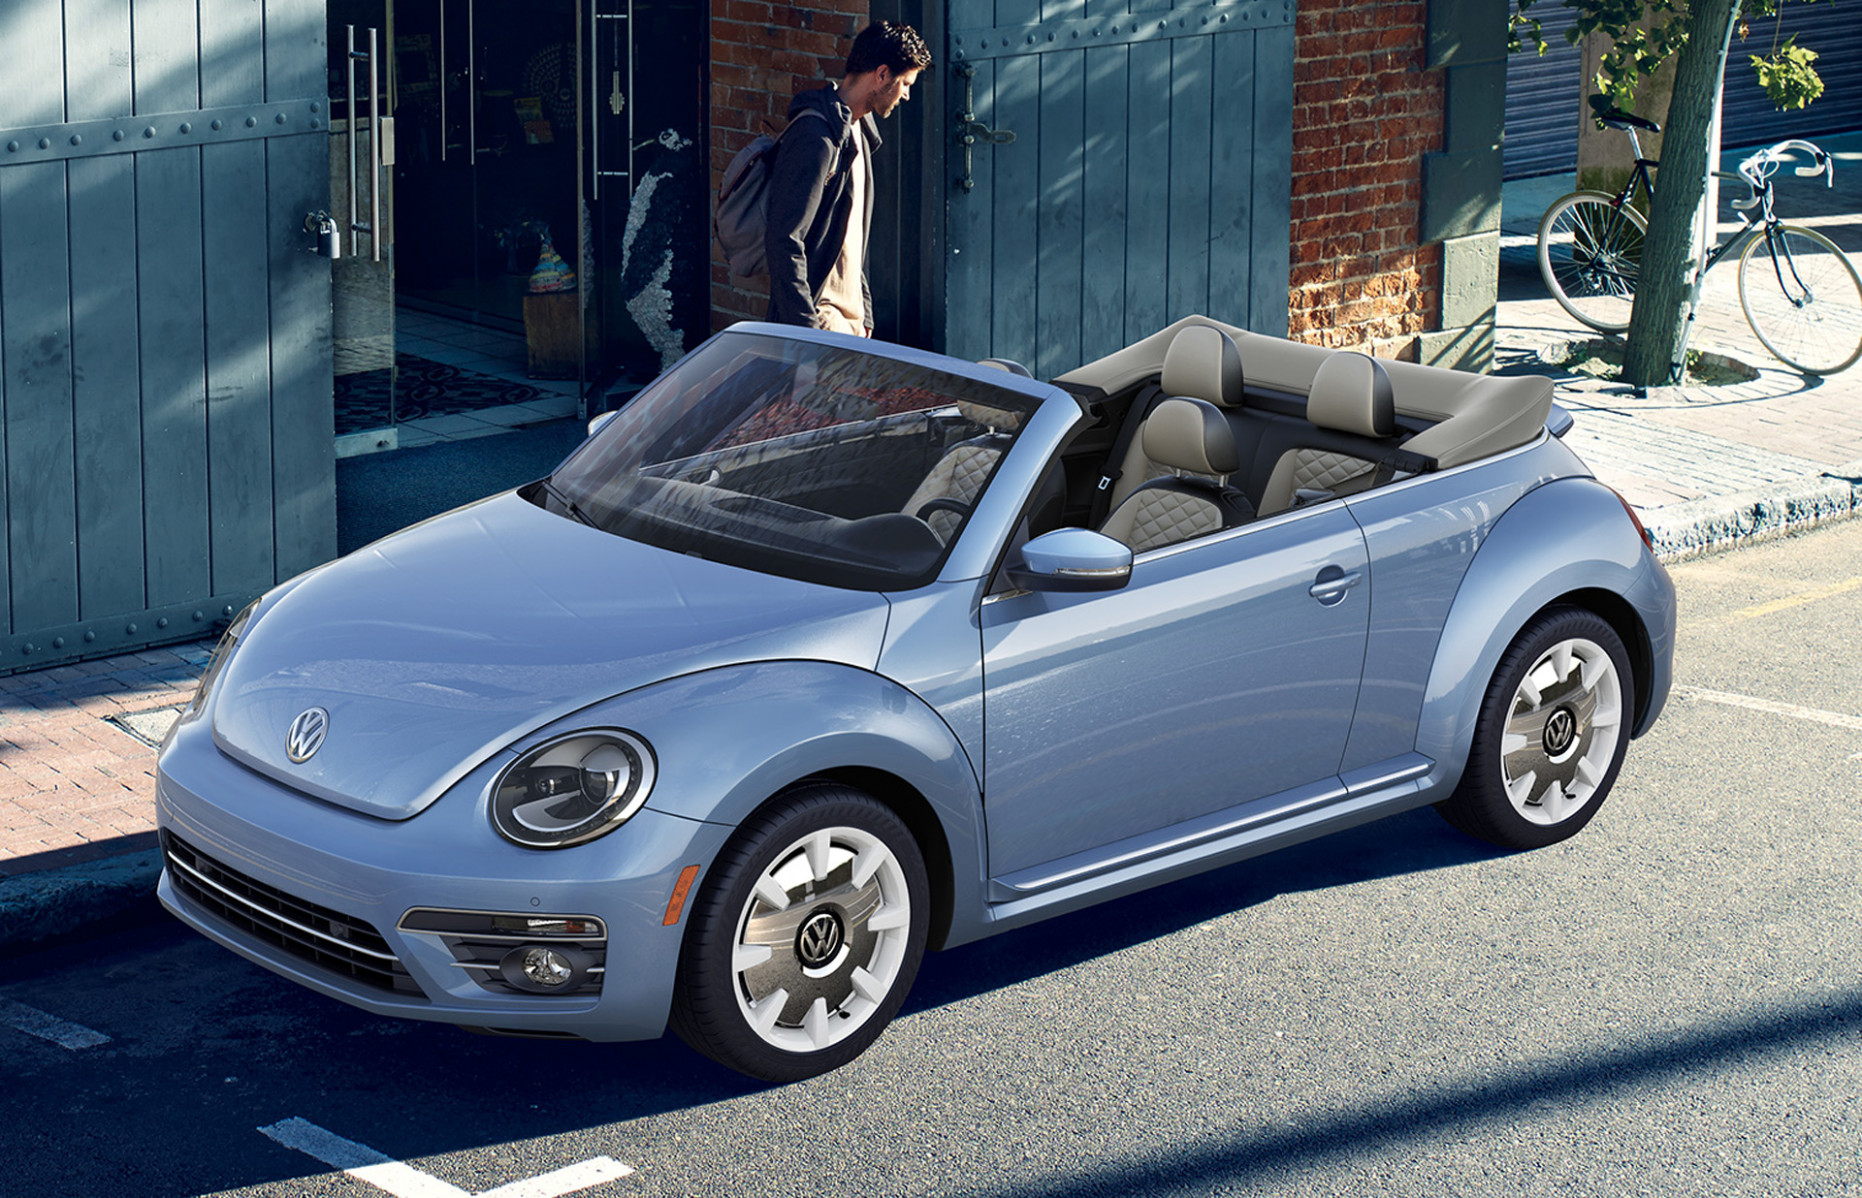 5 Volkswagen Beetle (VW) Review, Ratings, Specs, Prices, and ..